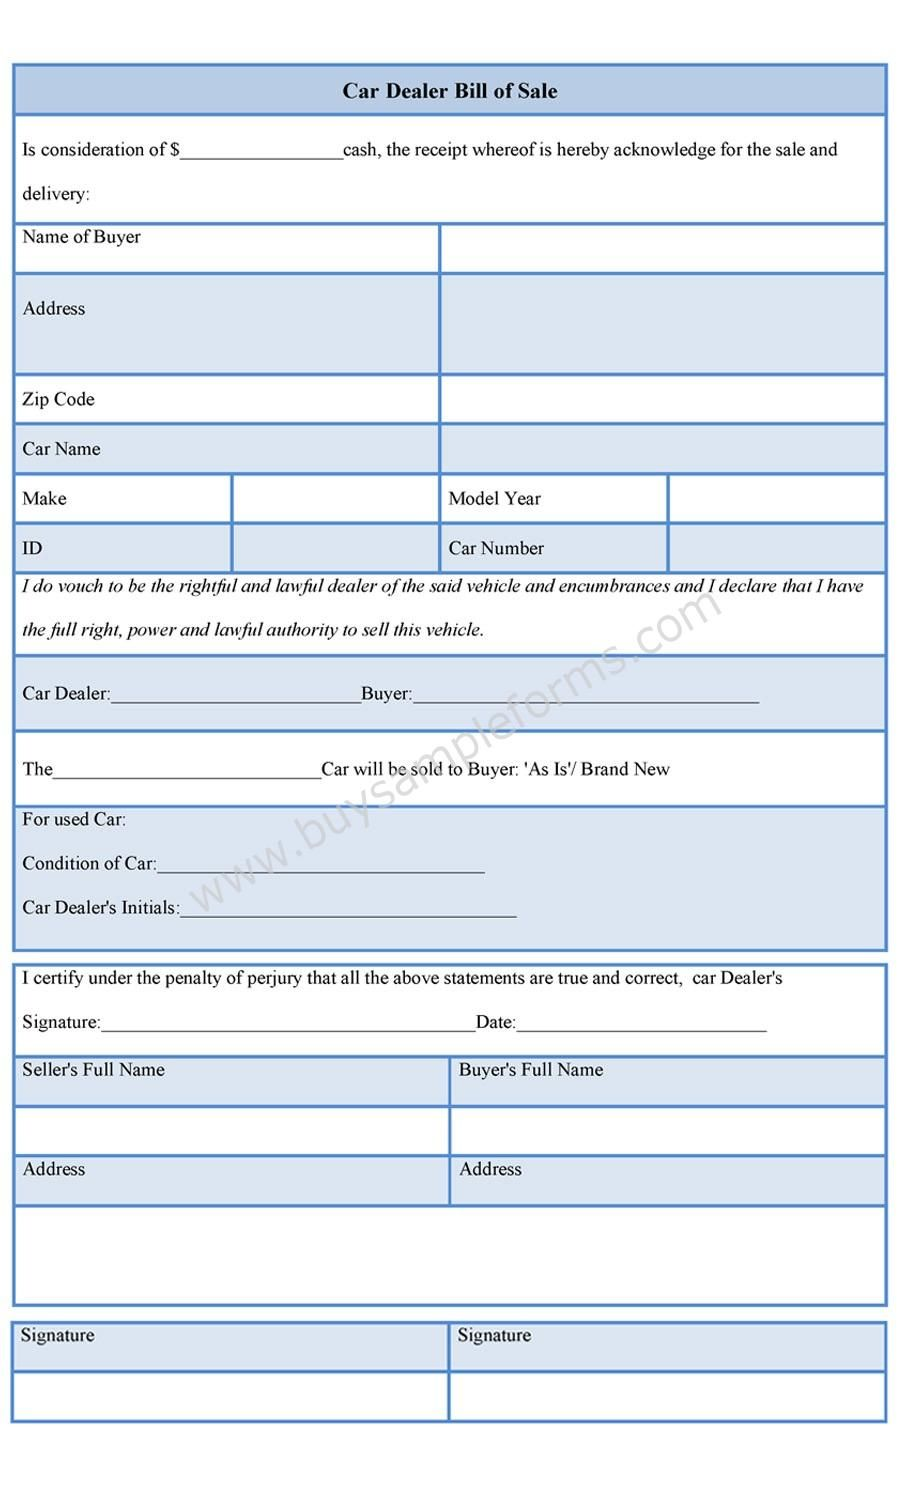 Download sample Car Dealer Bill of Sale template is available – Microsoft Office Bill of Sale Template